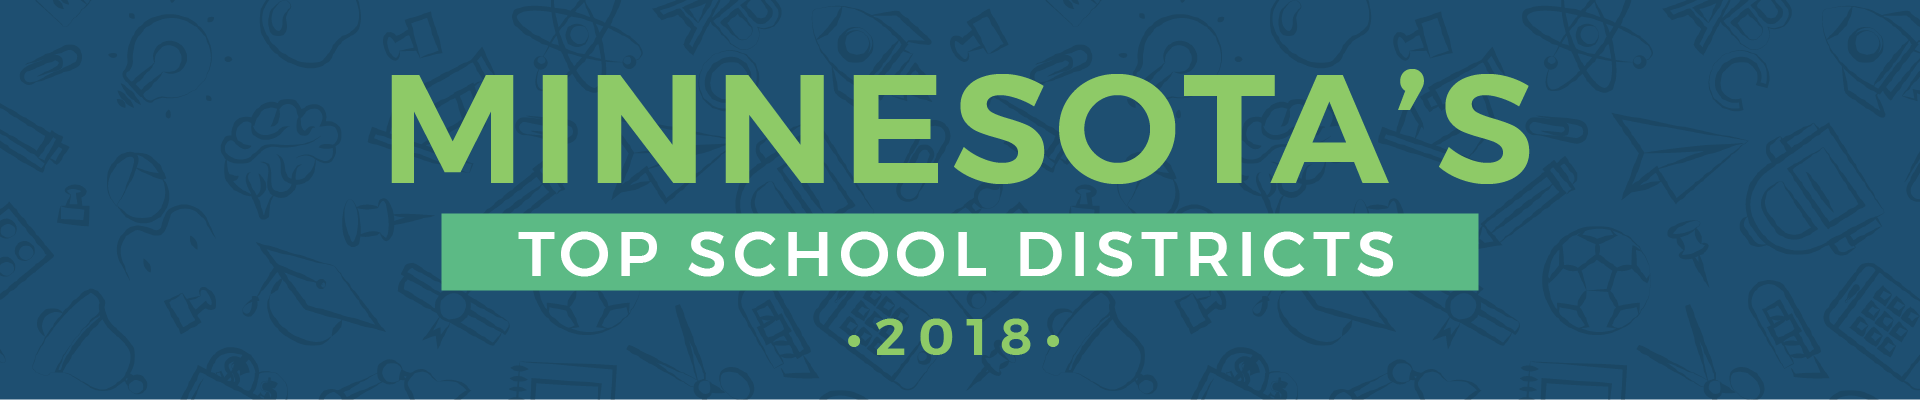 Top School Districts in Minnesota, 2018 | BackgroundChecks org